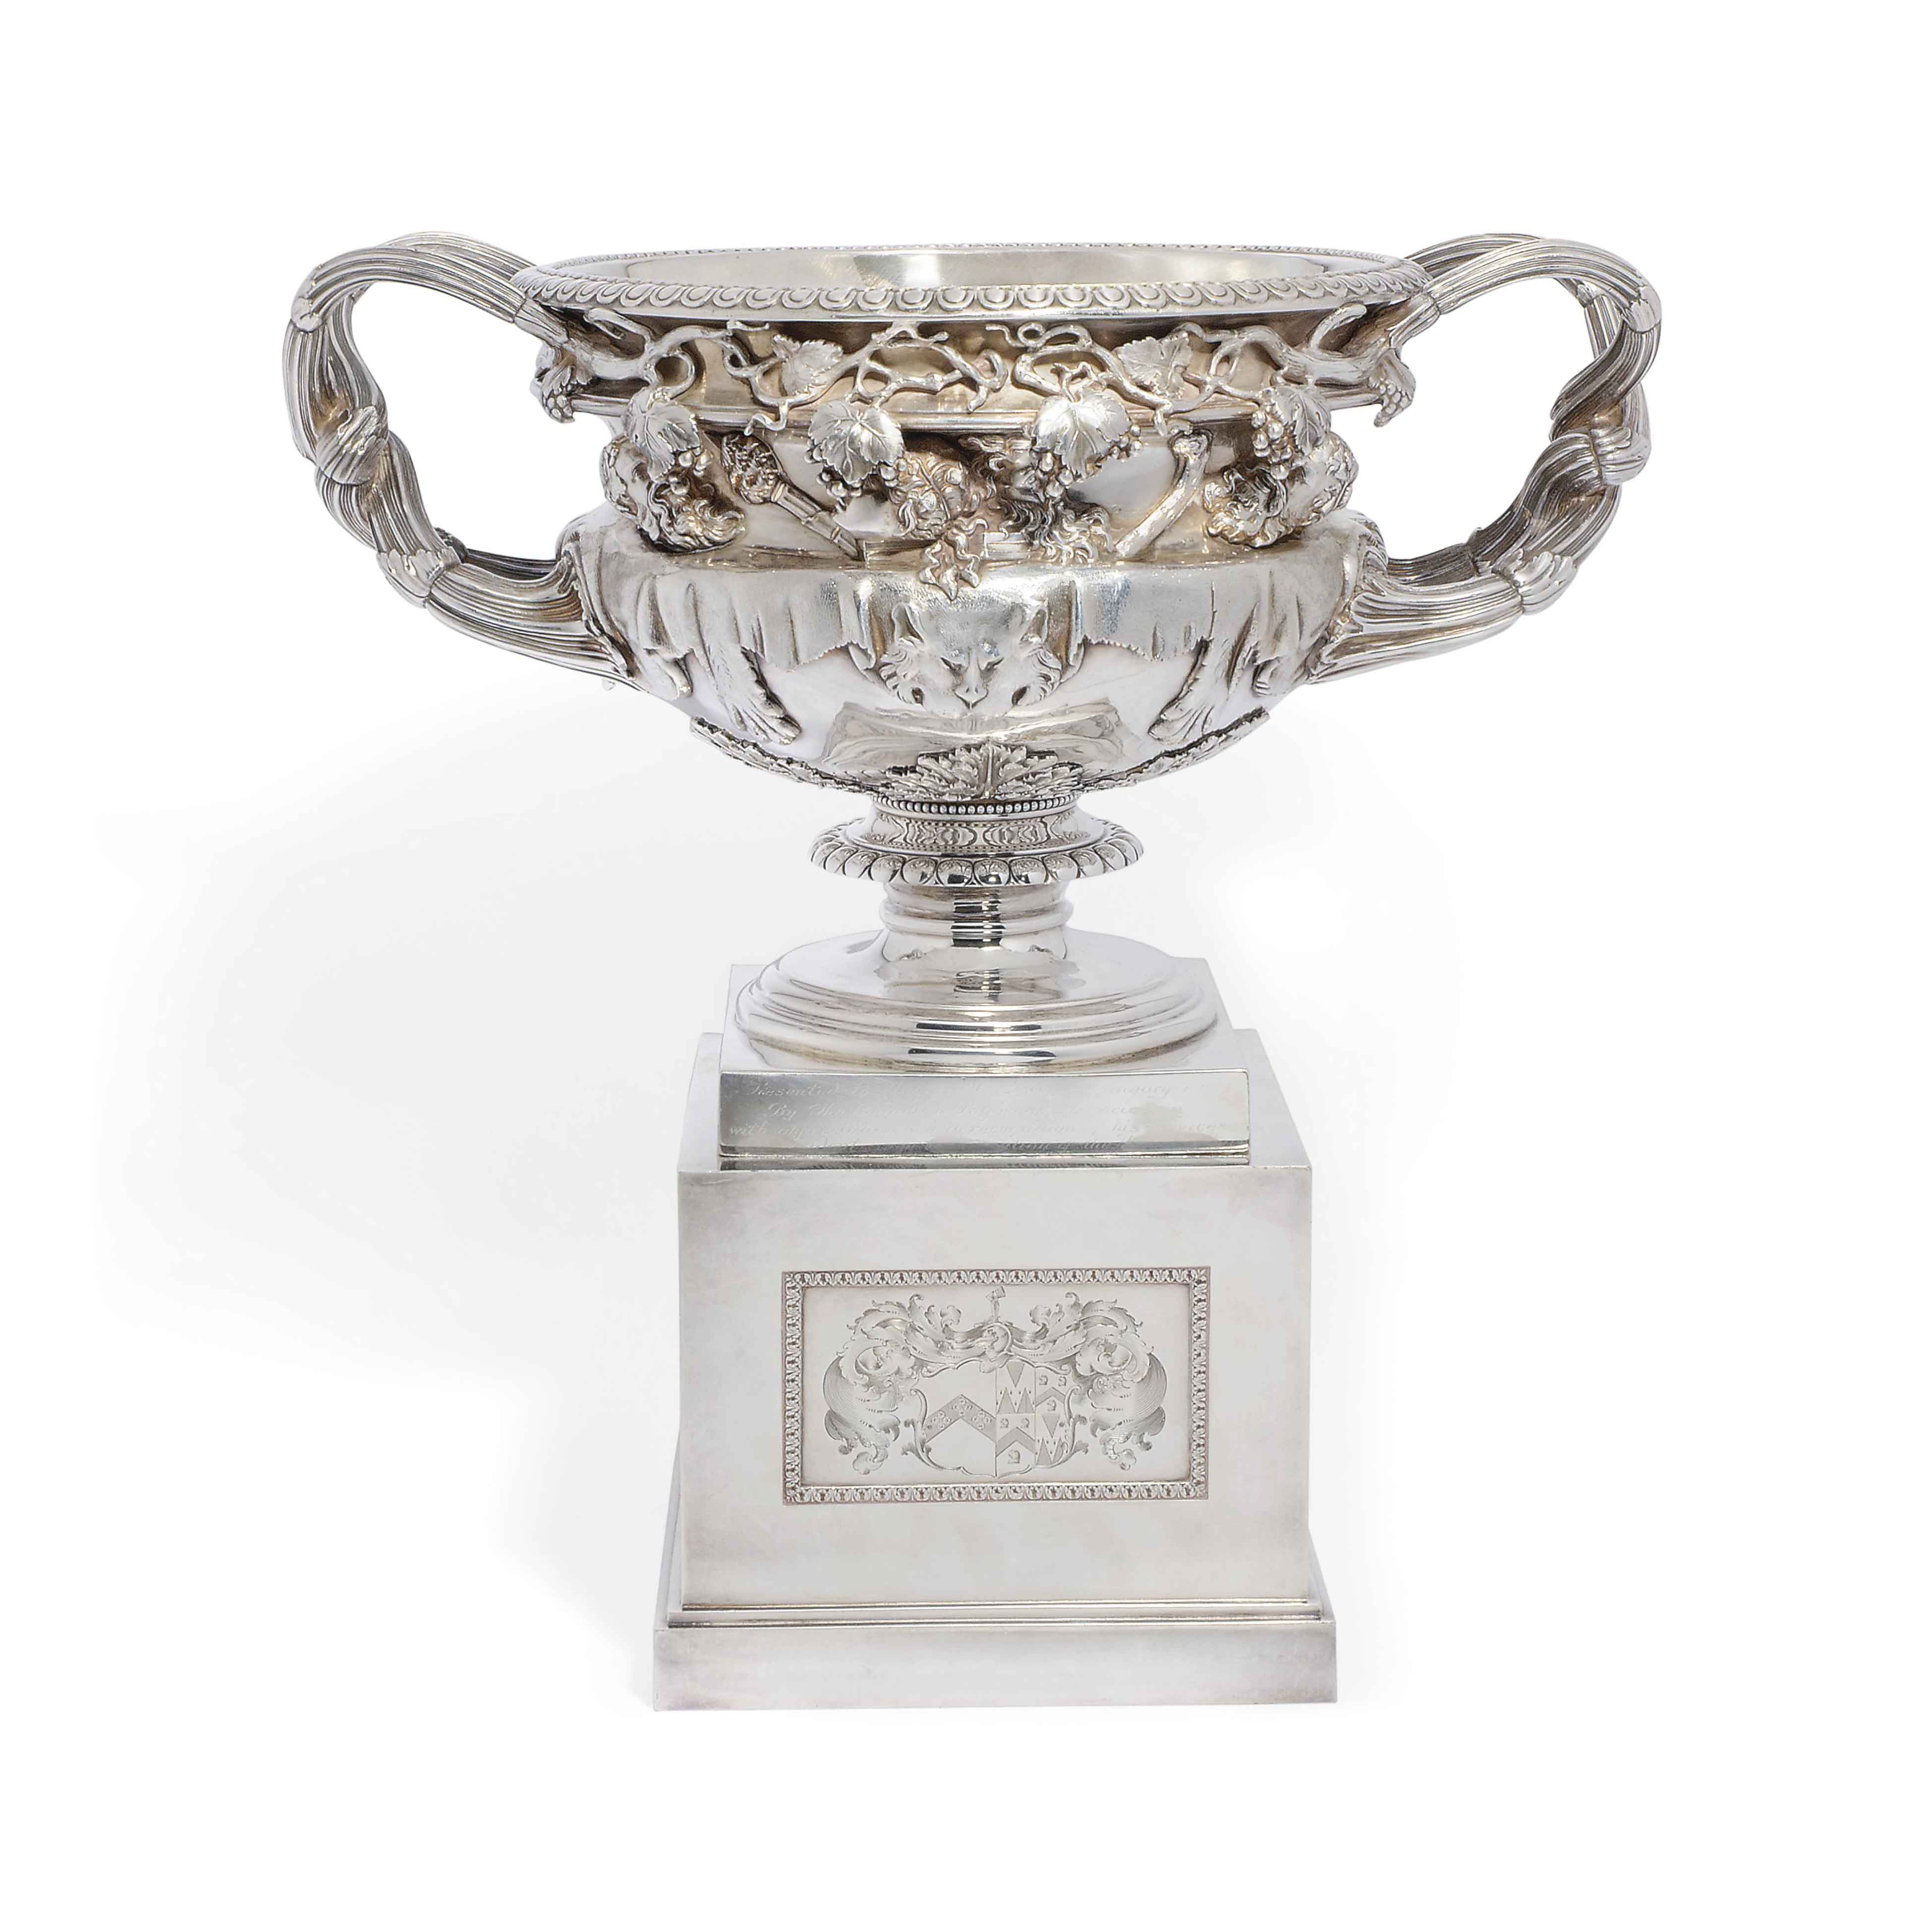 A LATE VICTORIAN SILVER COPY OF THE 'WARWICK' VASE